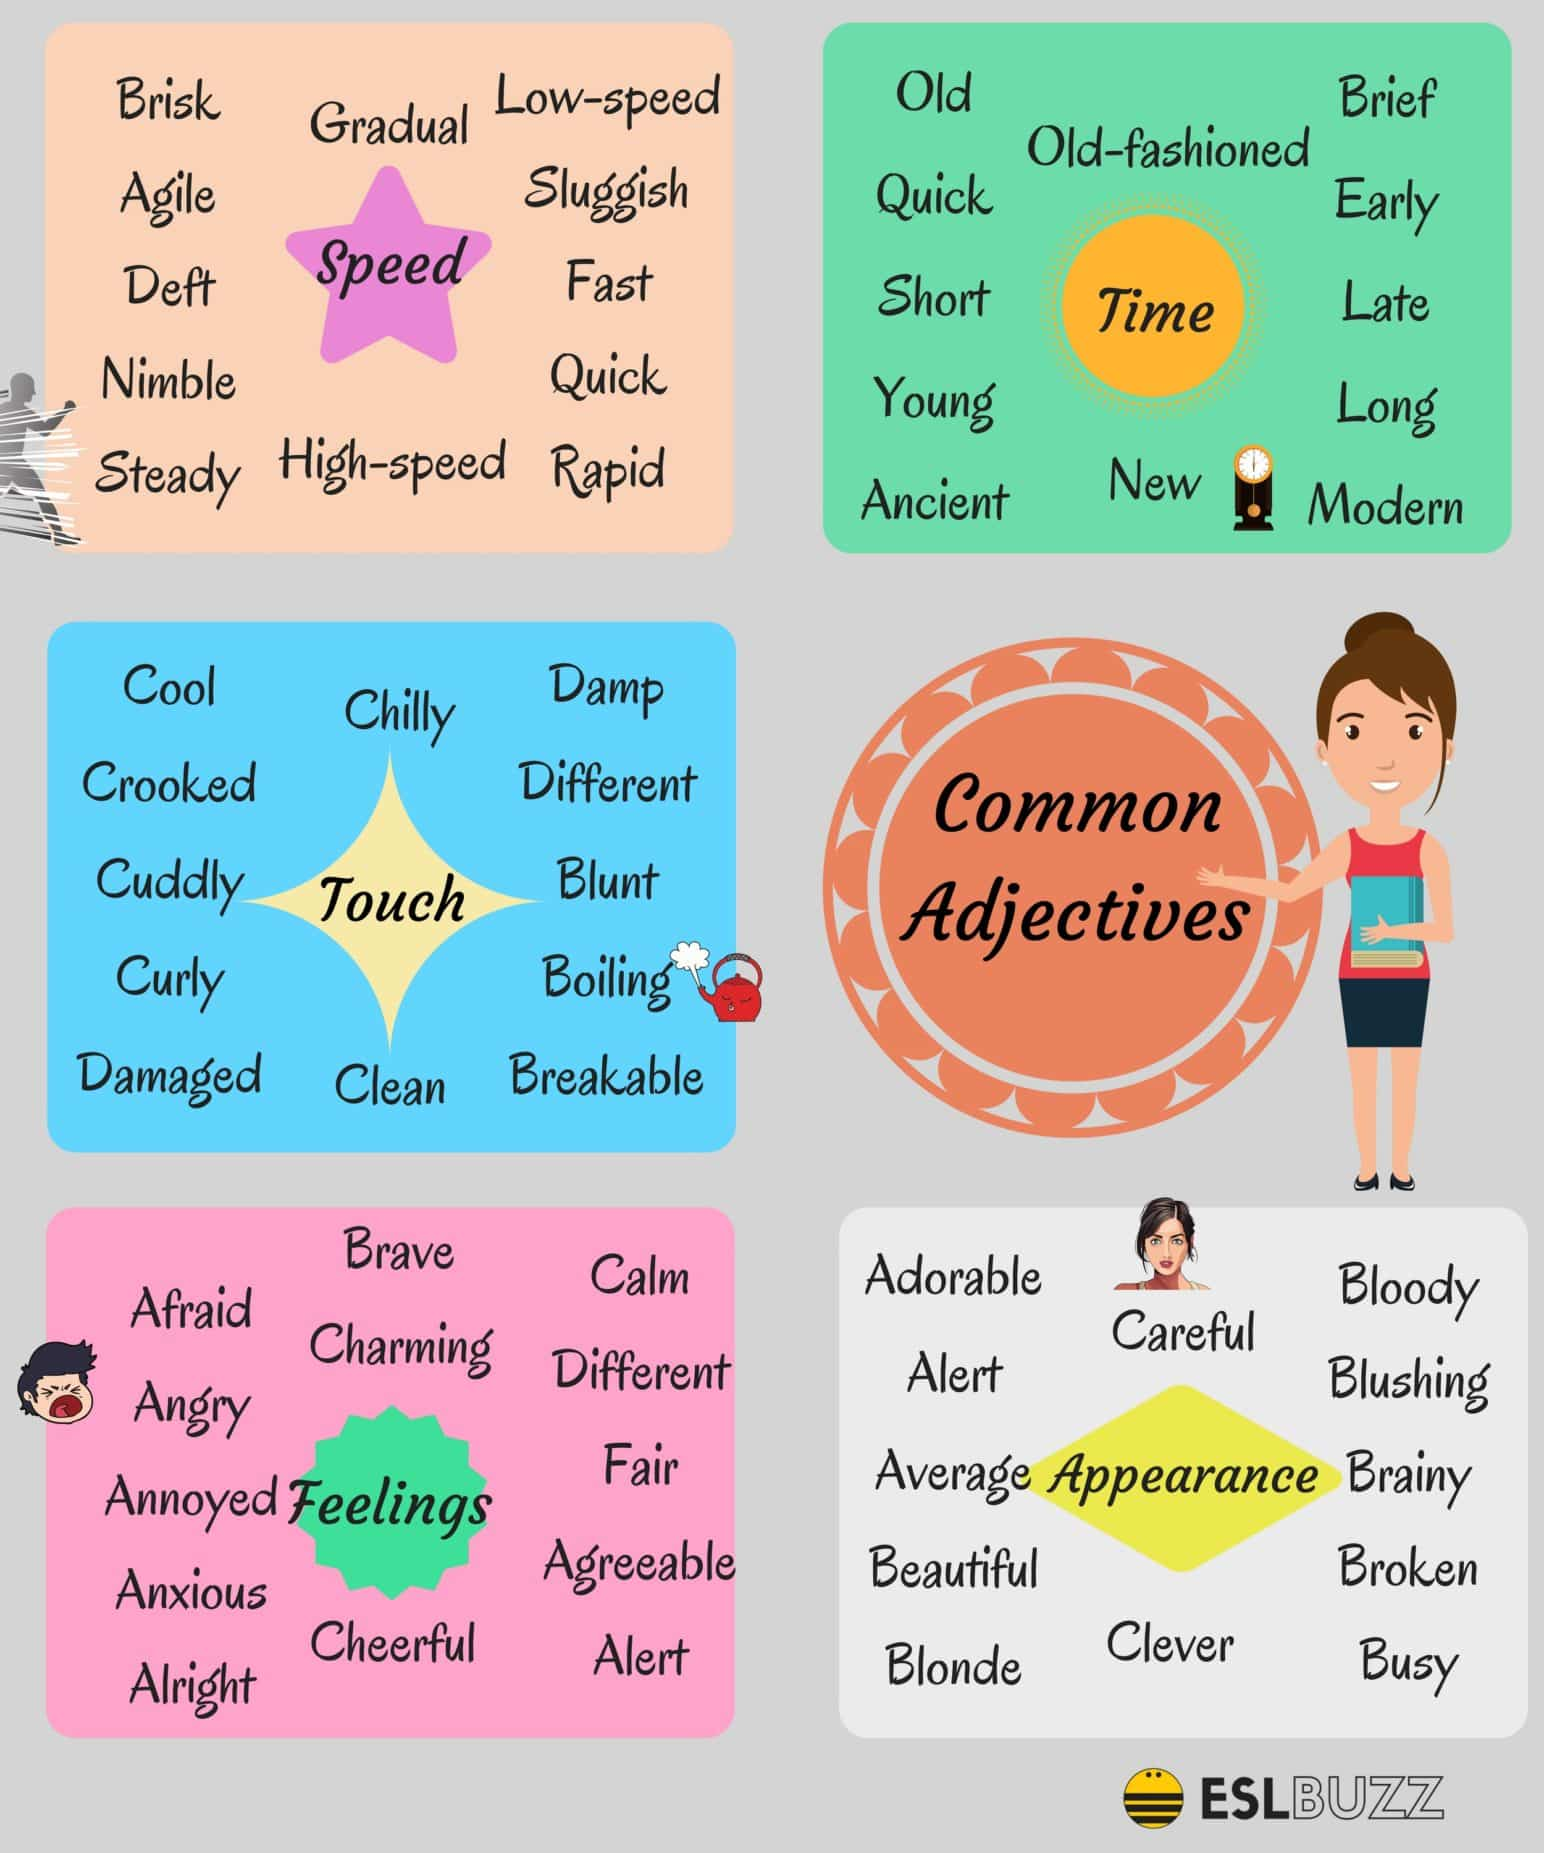 List of Adjectives - Common Adjectives in English 8